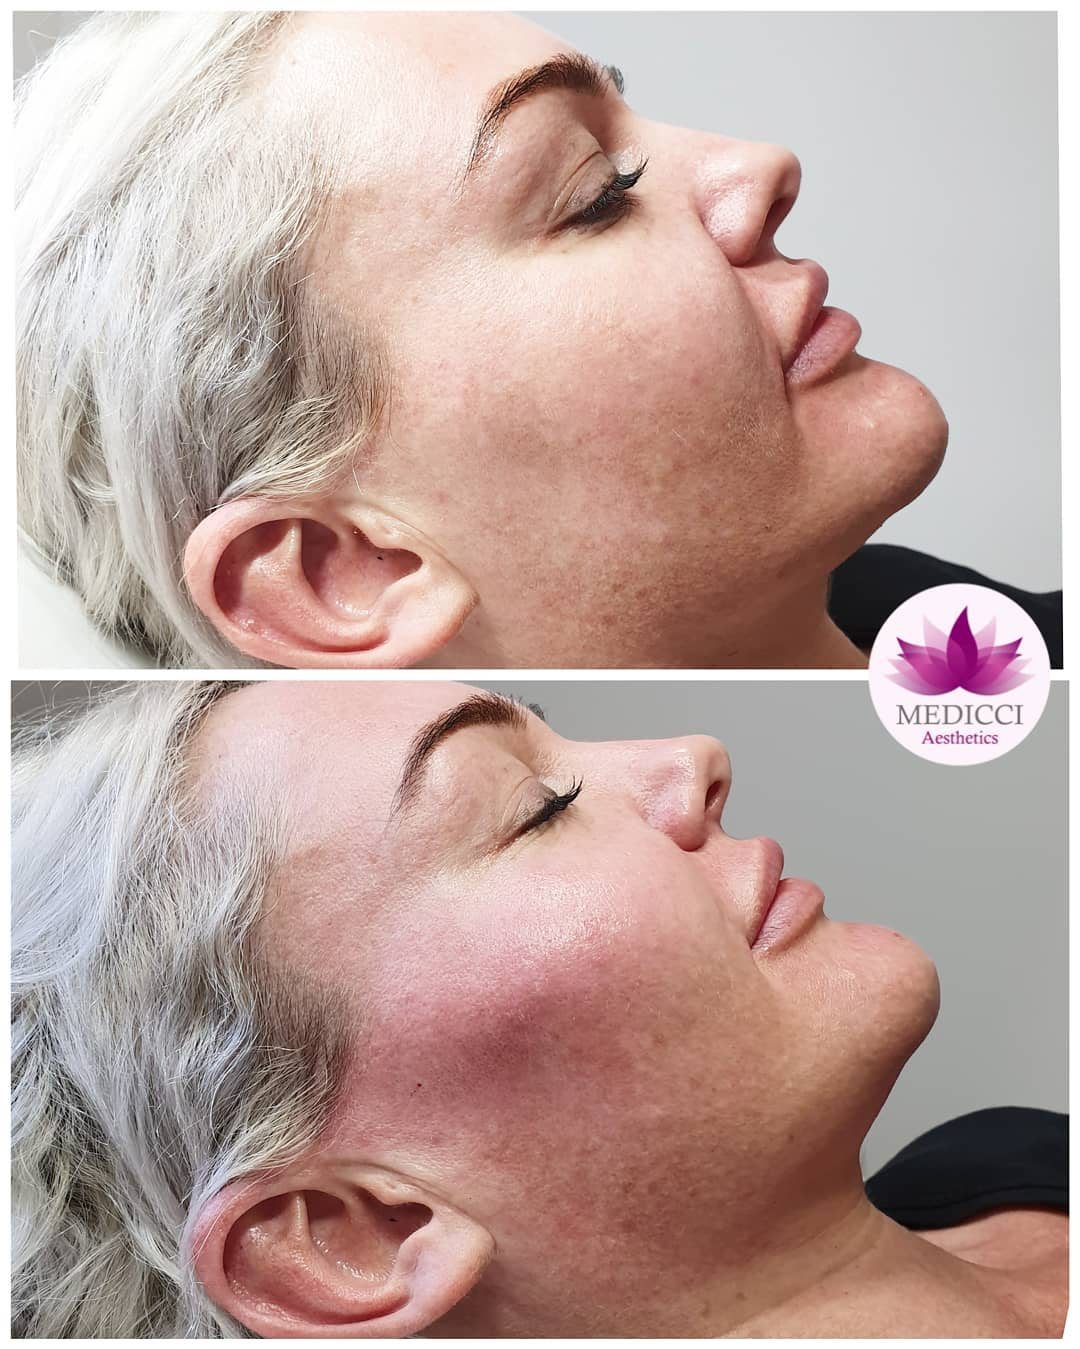 Non-Surgical Rhinoplasty? Yes, It's Possible!